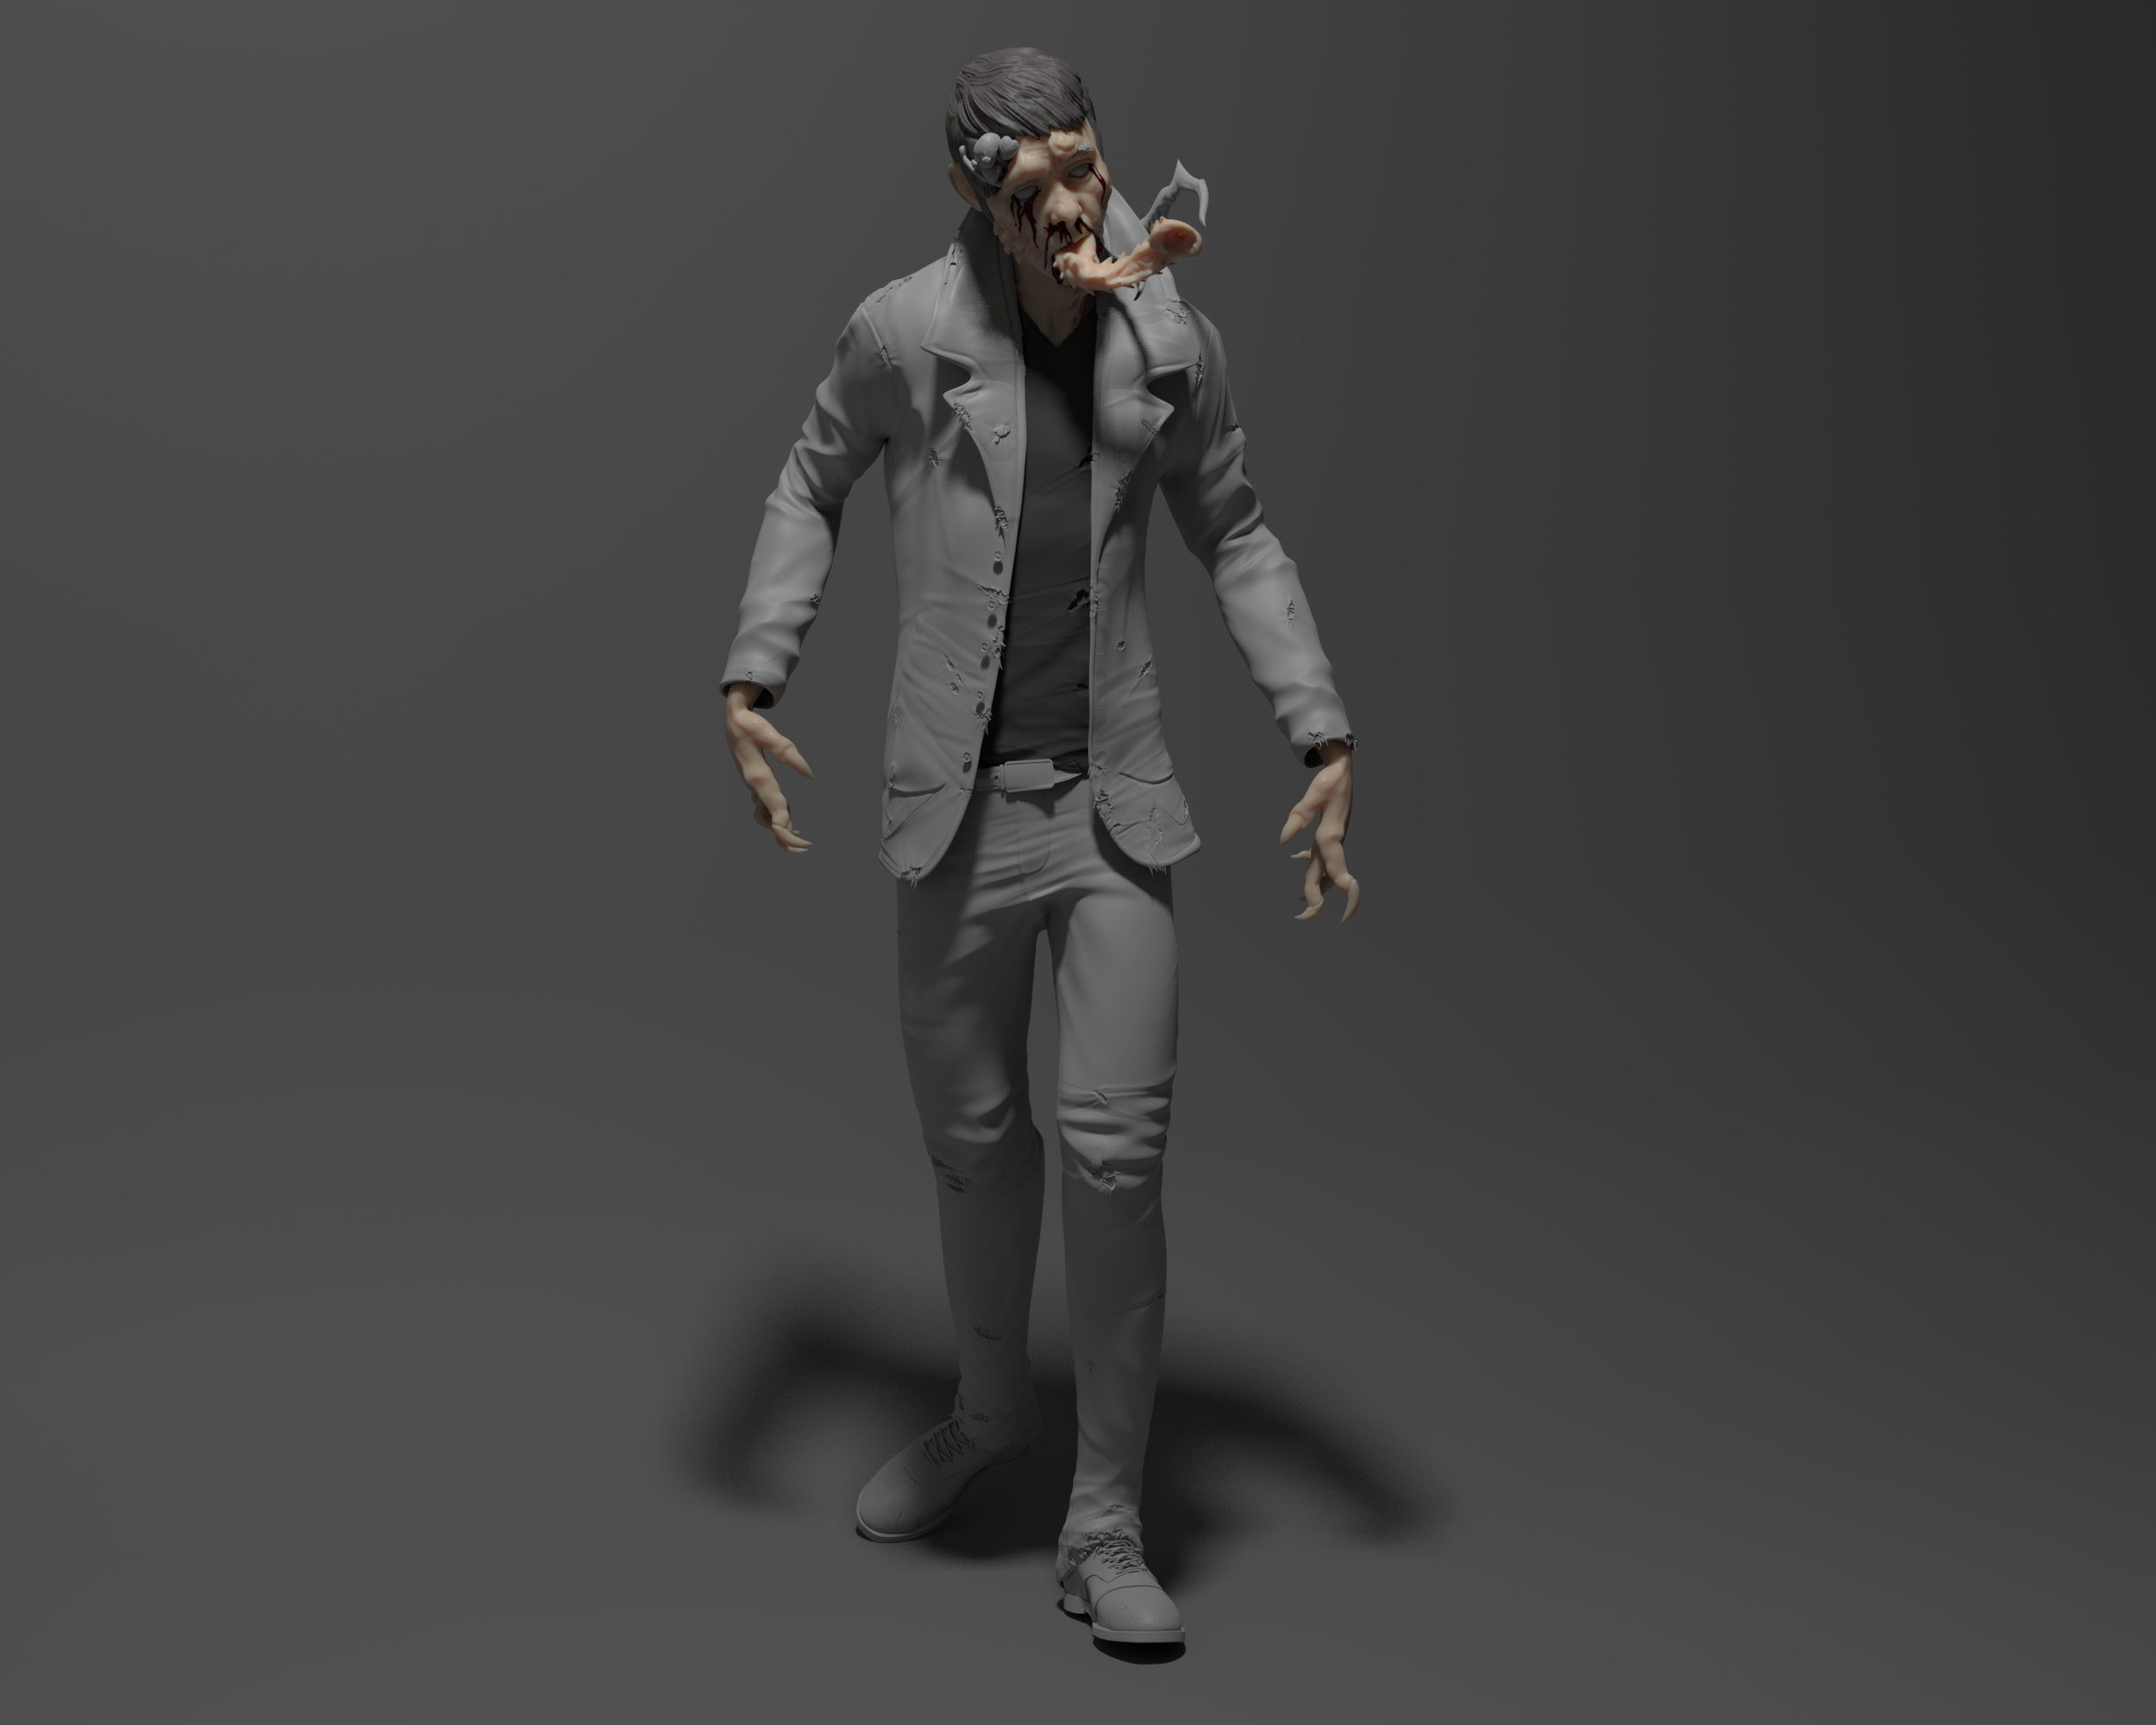 Zombie_Infected_PoseSkin.jpg